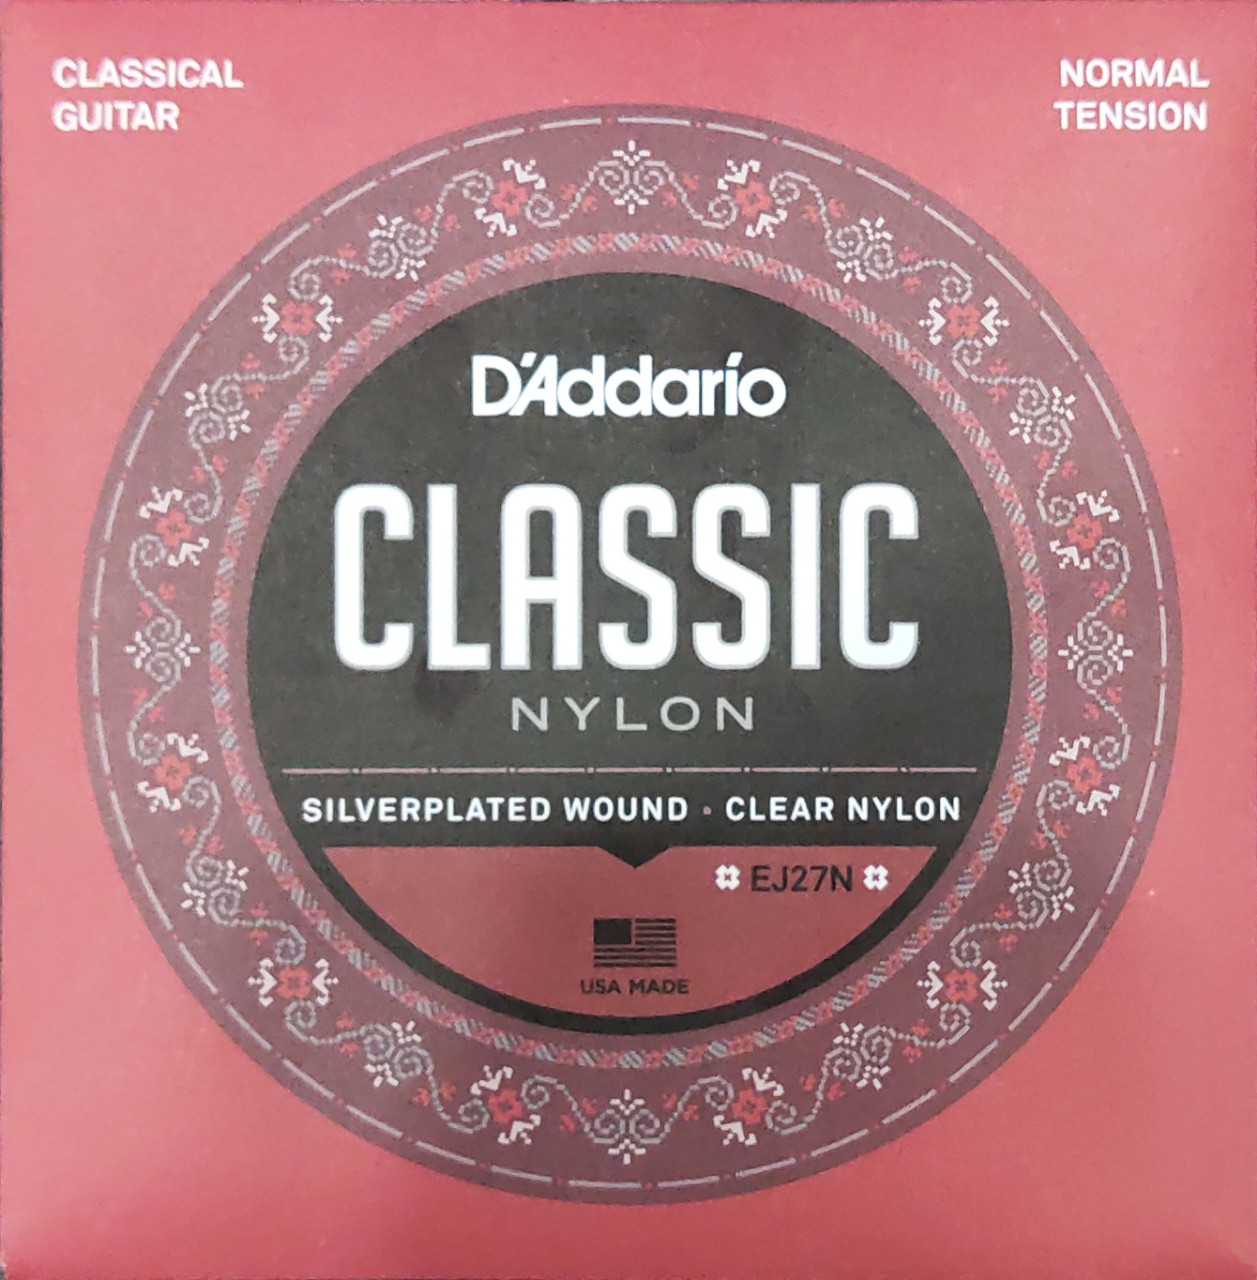 D'ADDARIO EJ27N STUDENT NYLON CLASSICAL GUITAR STRINGS, NORMAL TENSION, CLEAR/SILVERPLATED WOUND